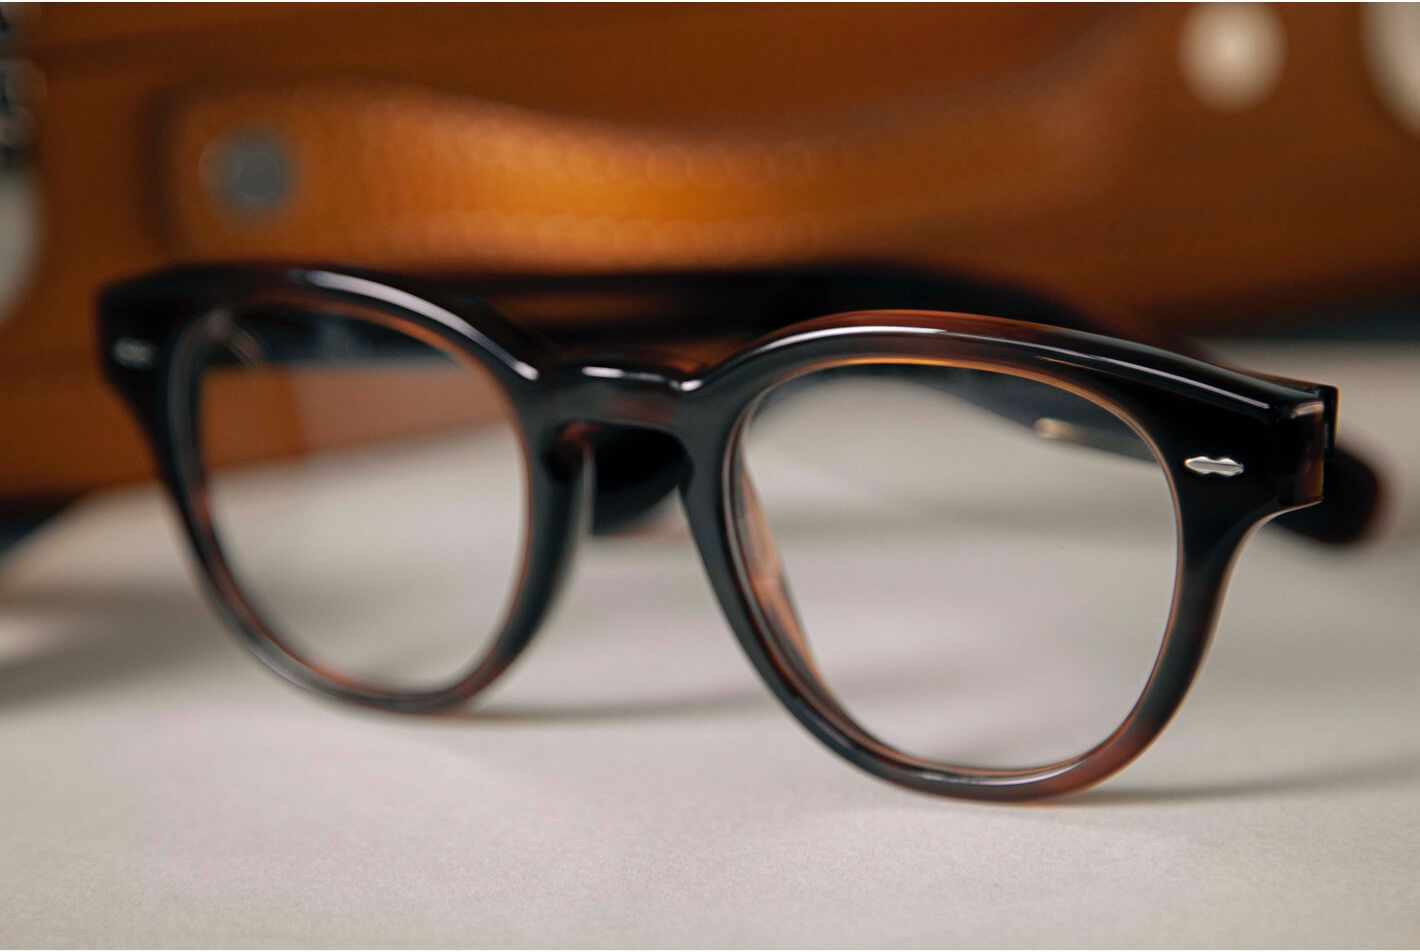 Cary Grant Glasses 2